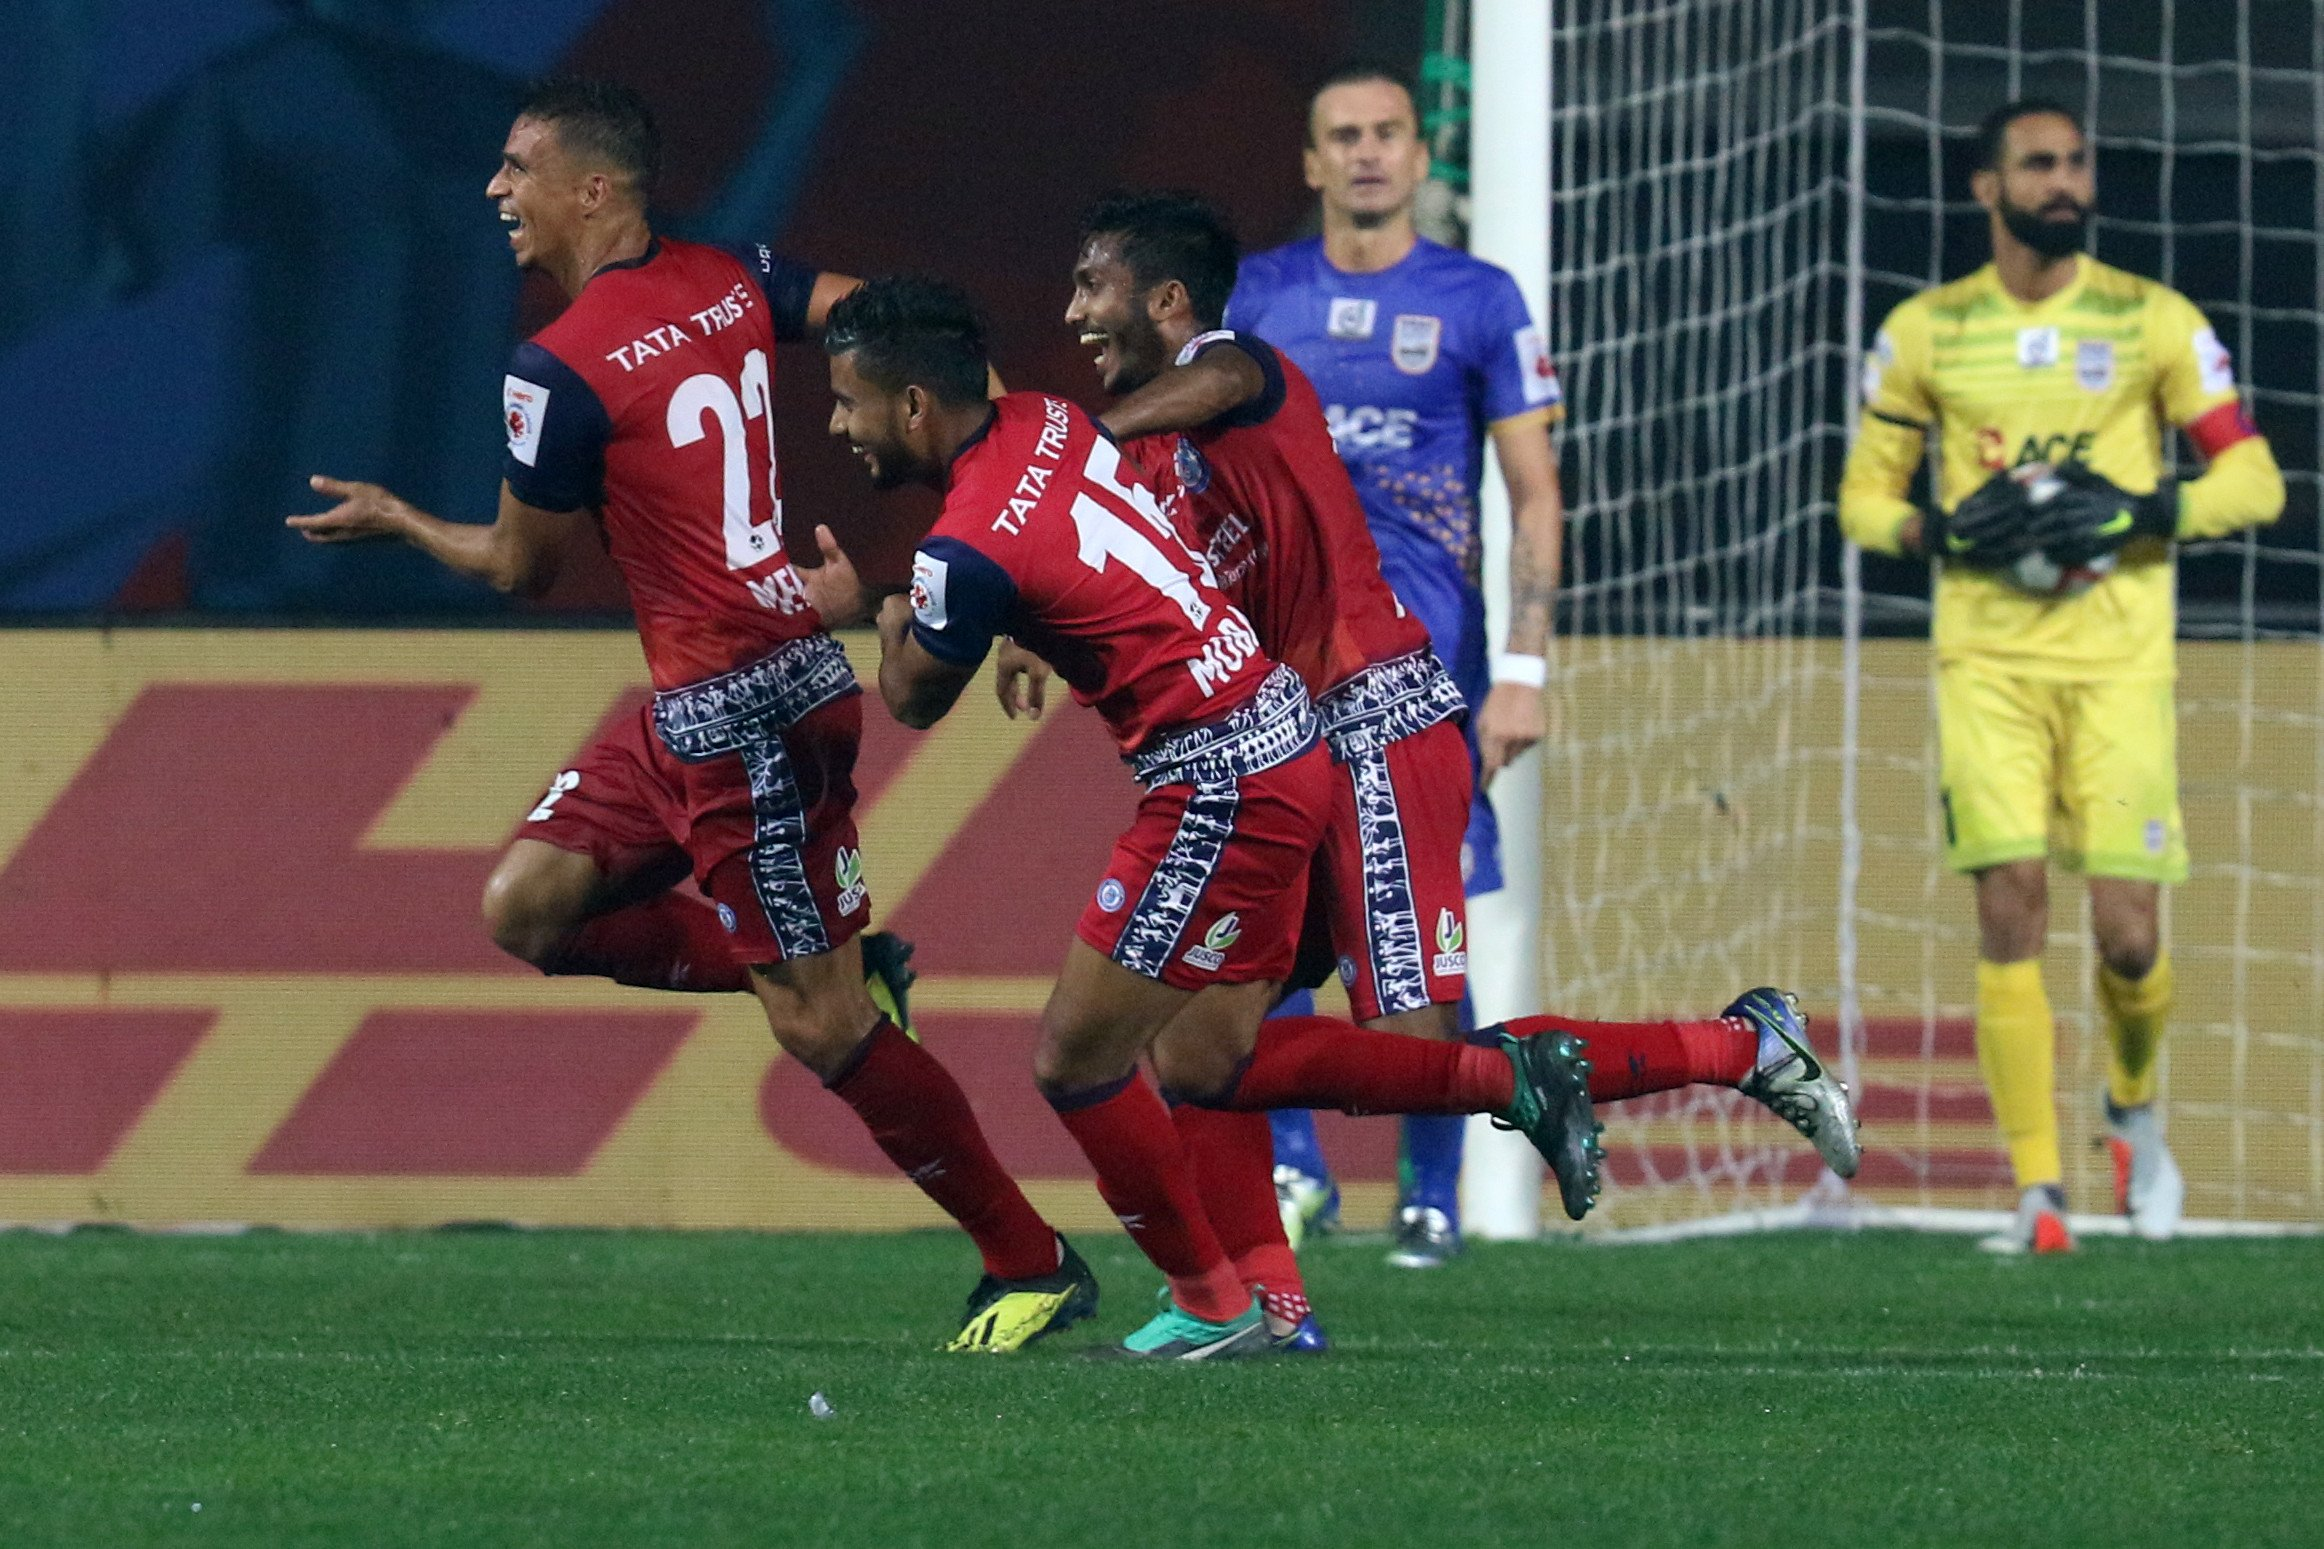 ISL 2018/19: Jamshedpur FC still in the race to make it to playoffs after win over Mumbai City FC